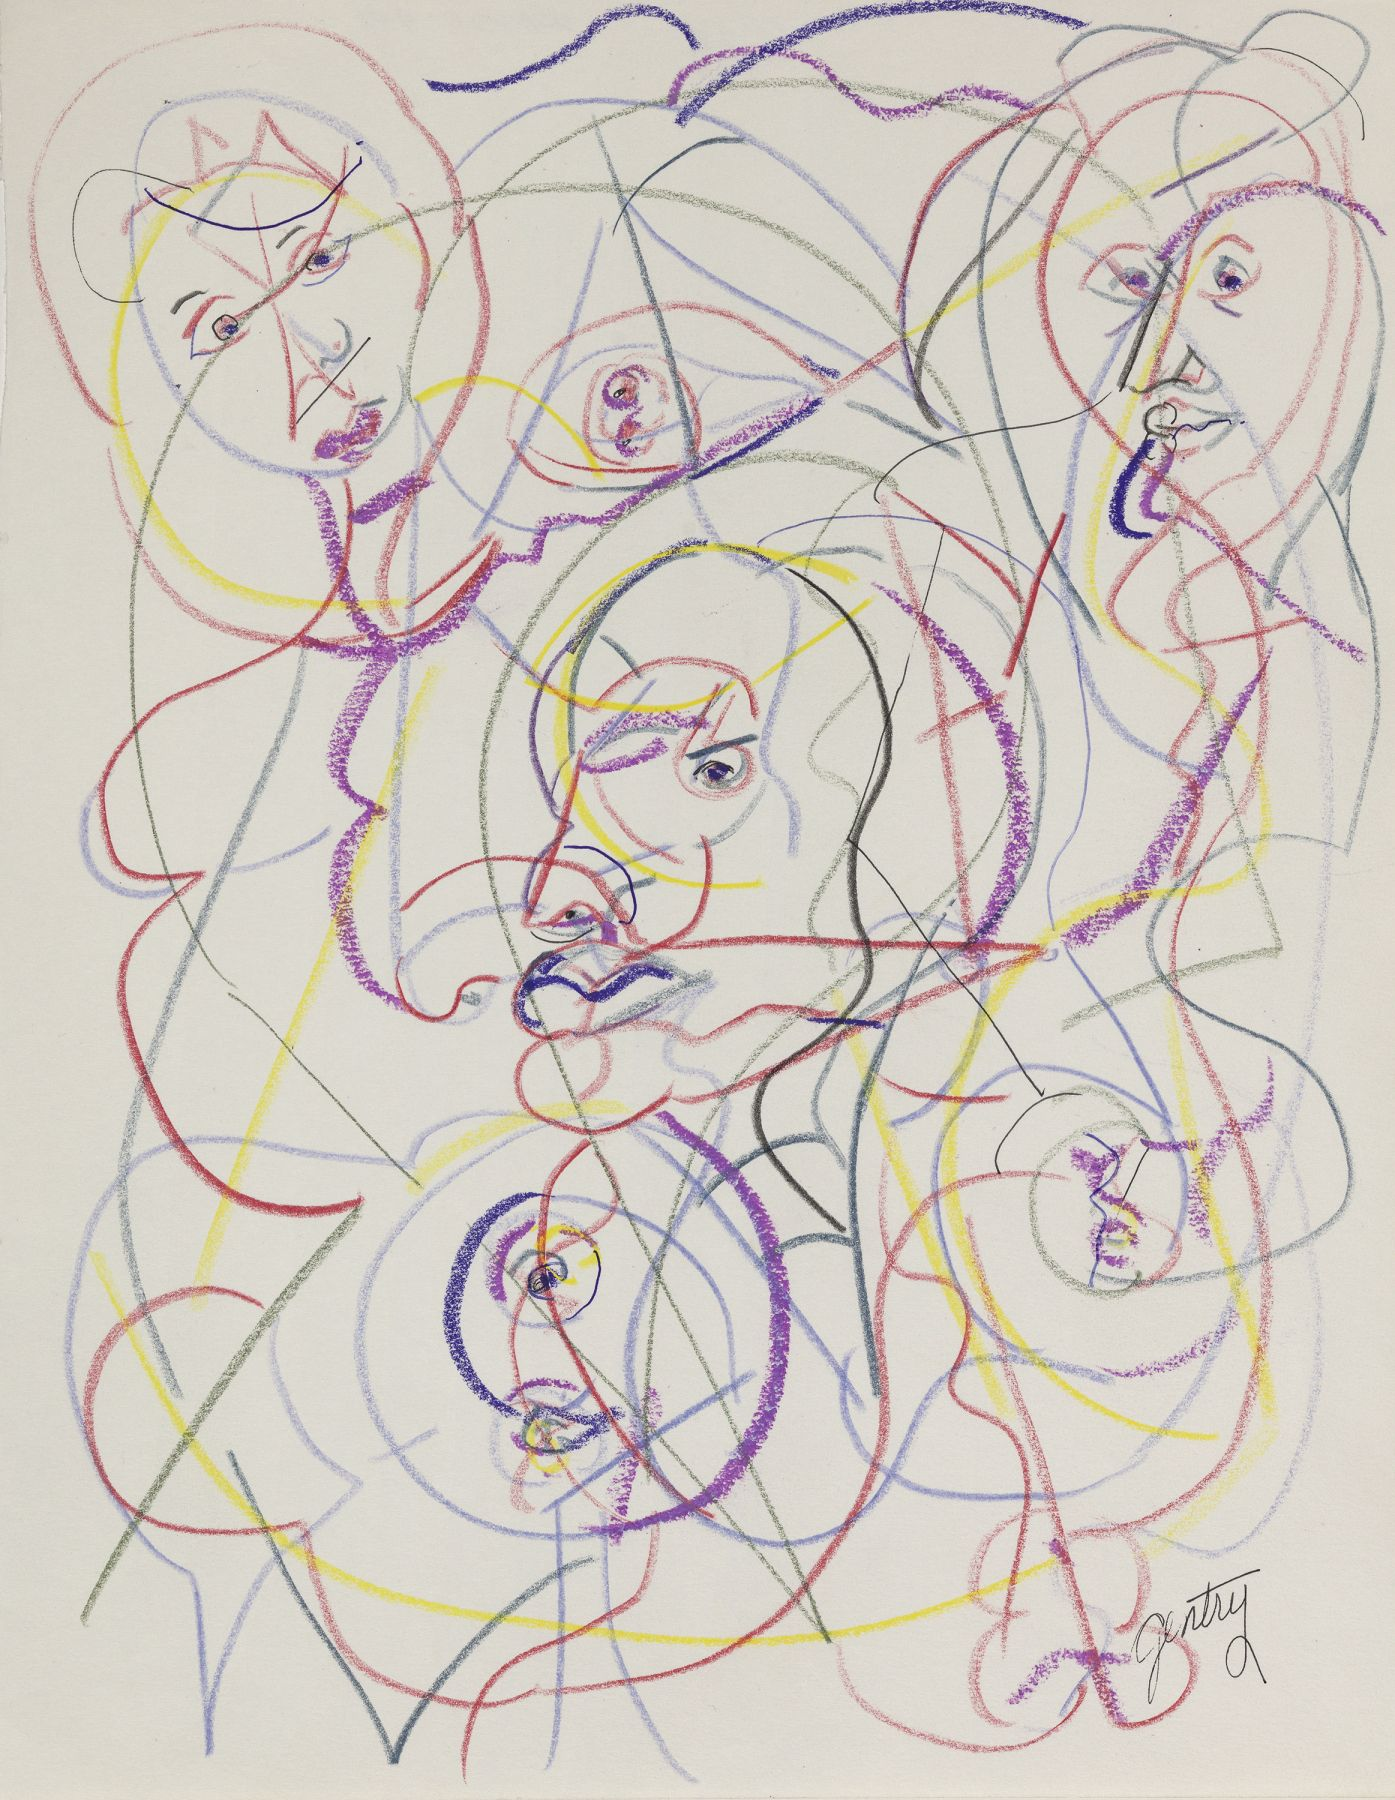 Untitled - DP-XV, 1993, Pastel and colored pencil on paper